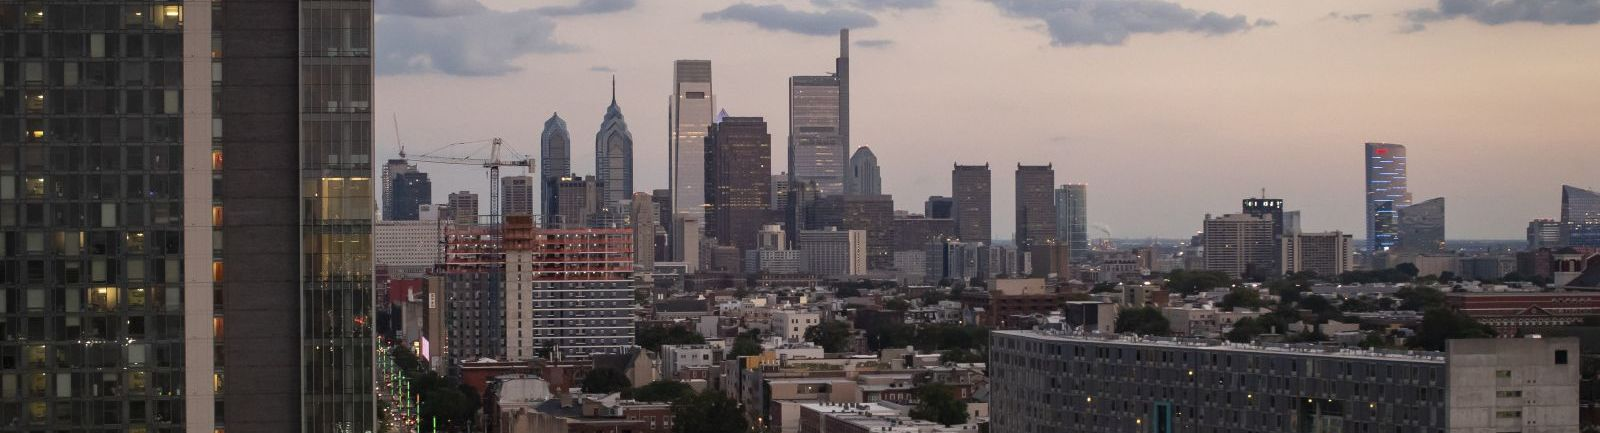 The Philadelphia skyline as seen from Temple Main Campus.